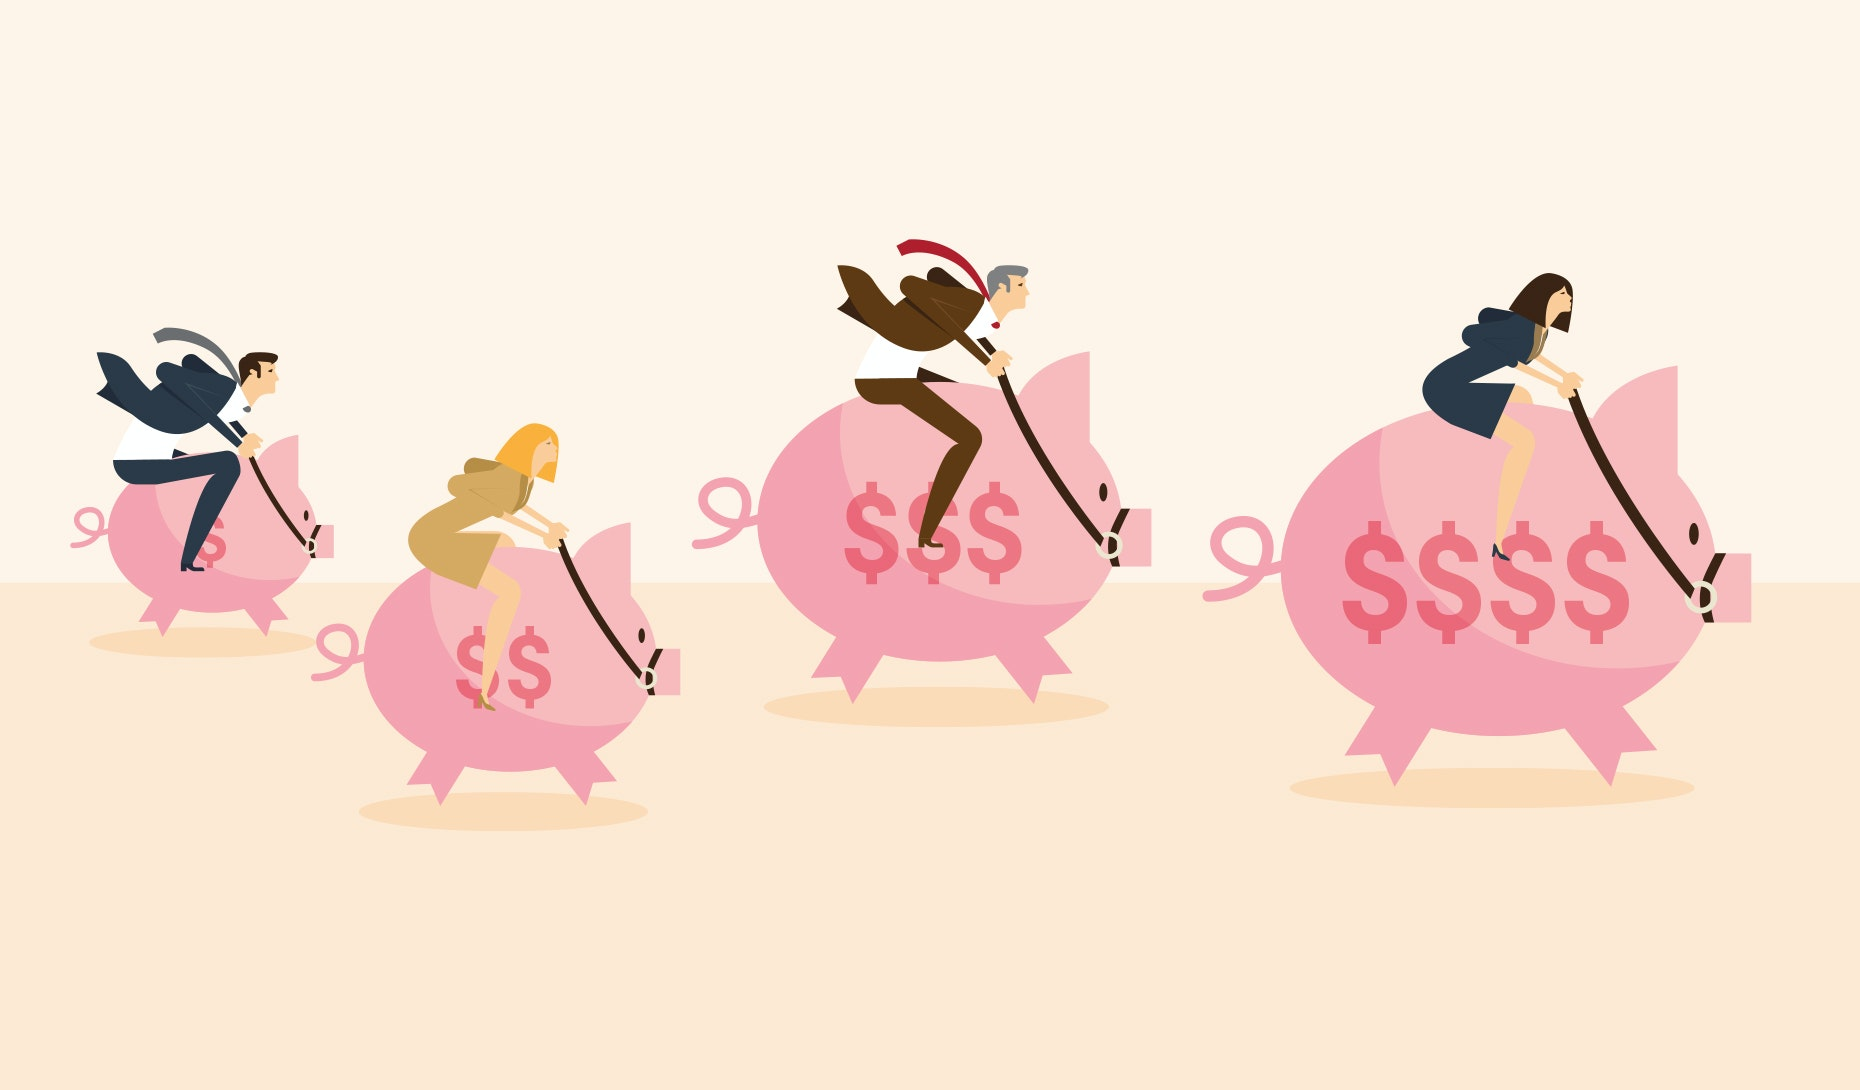 Graphic Design Earnings Uk: Graphic designer salaries: How much does a graphic designer earn rh:99designs.com,Design